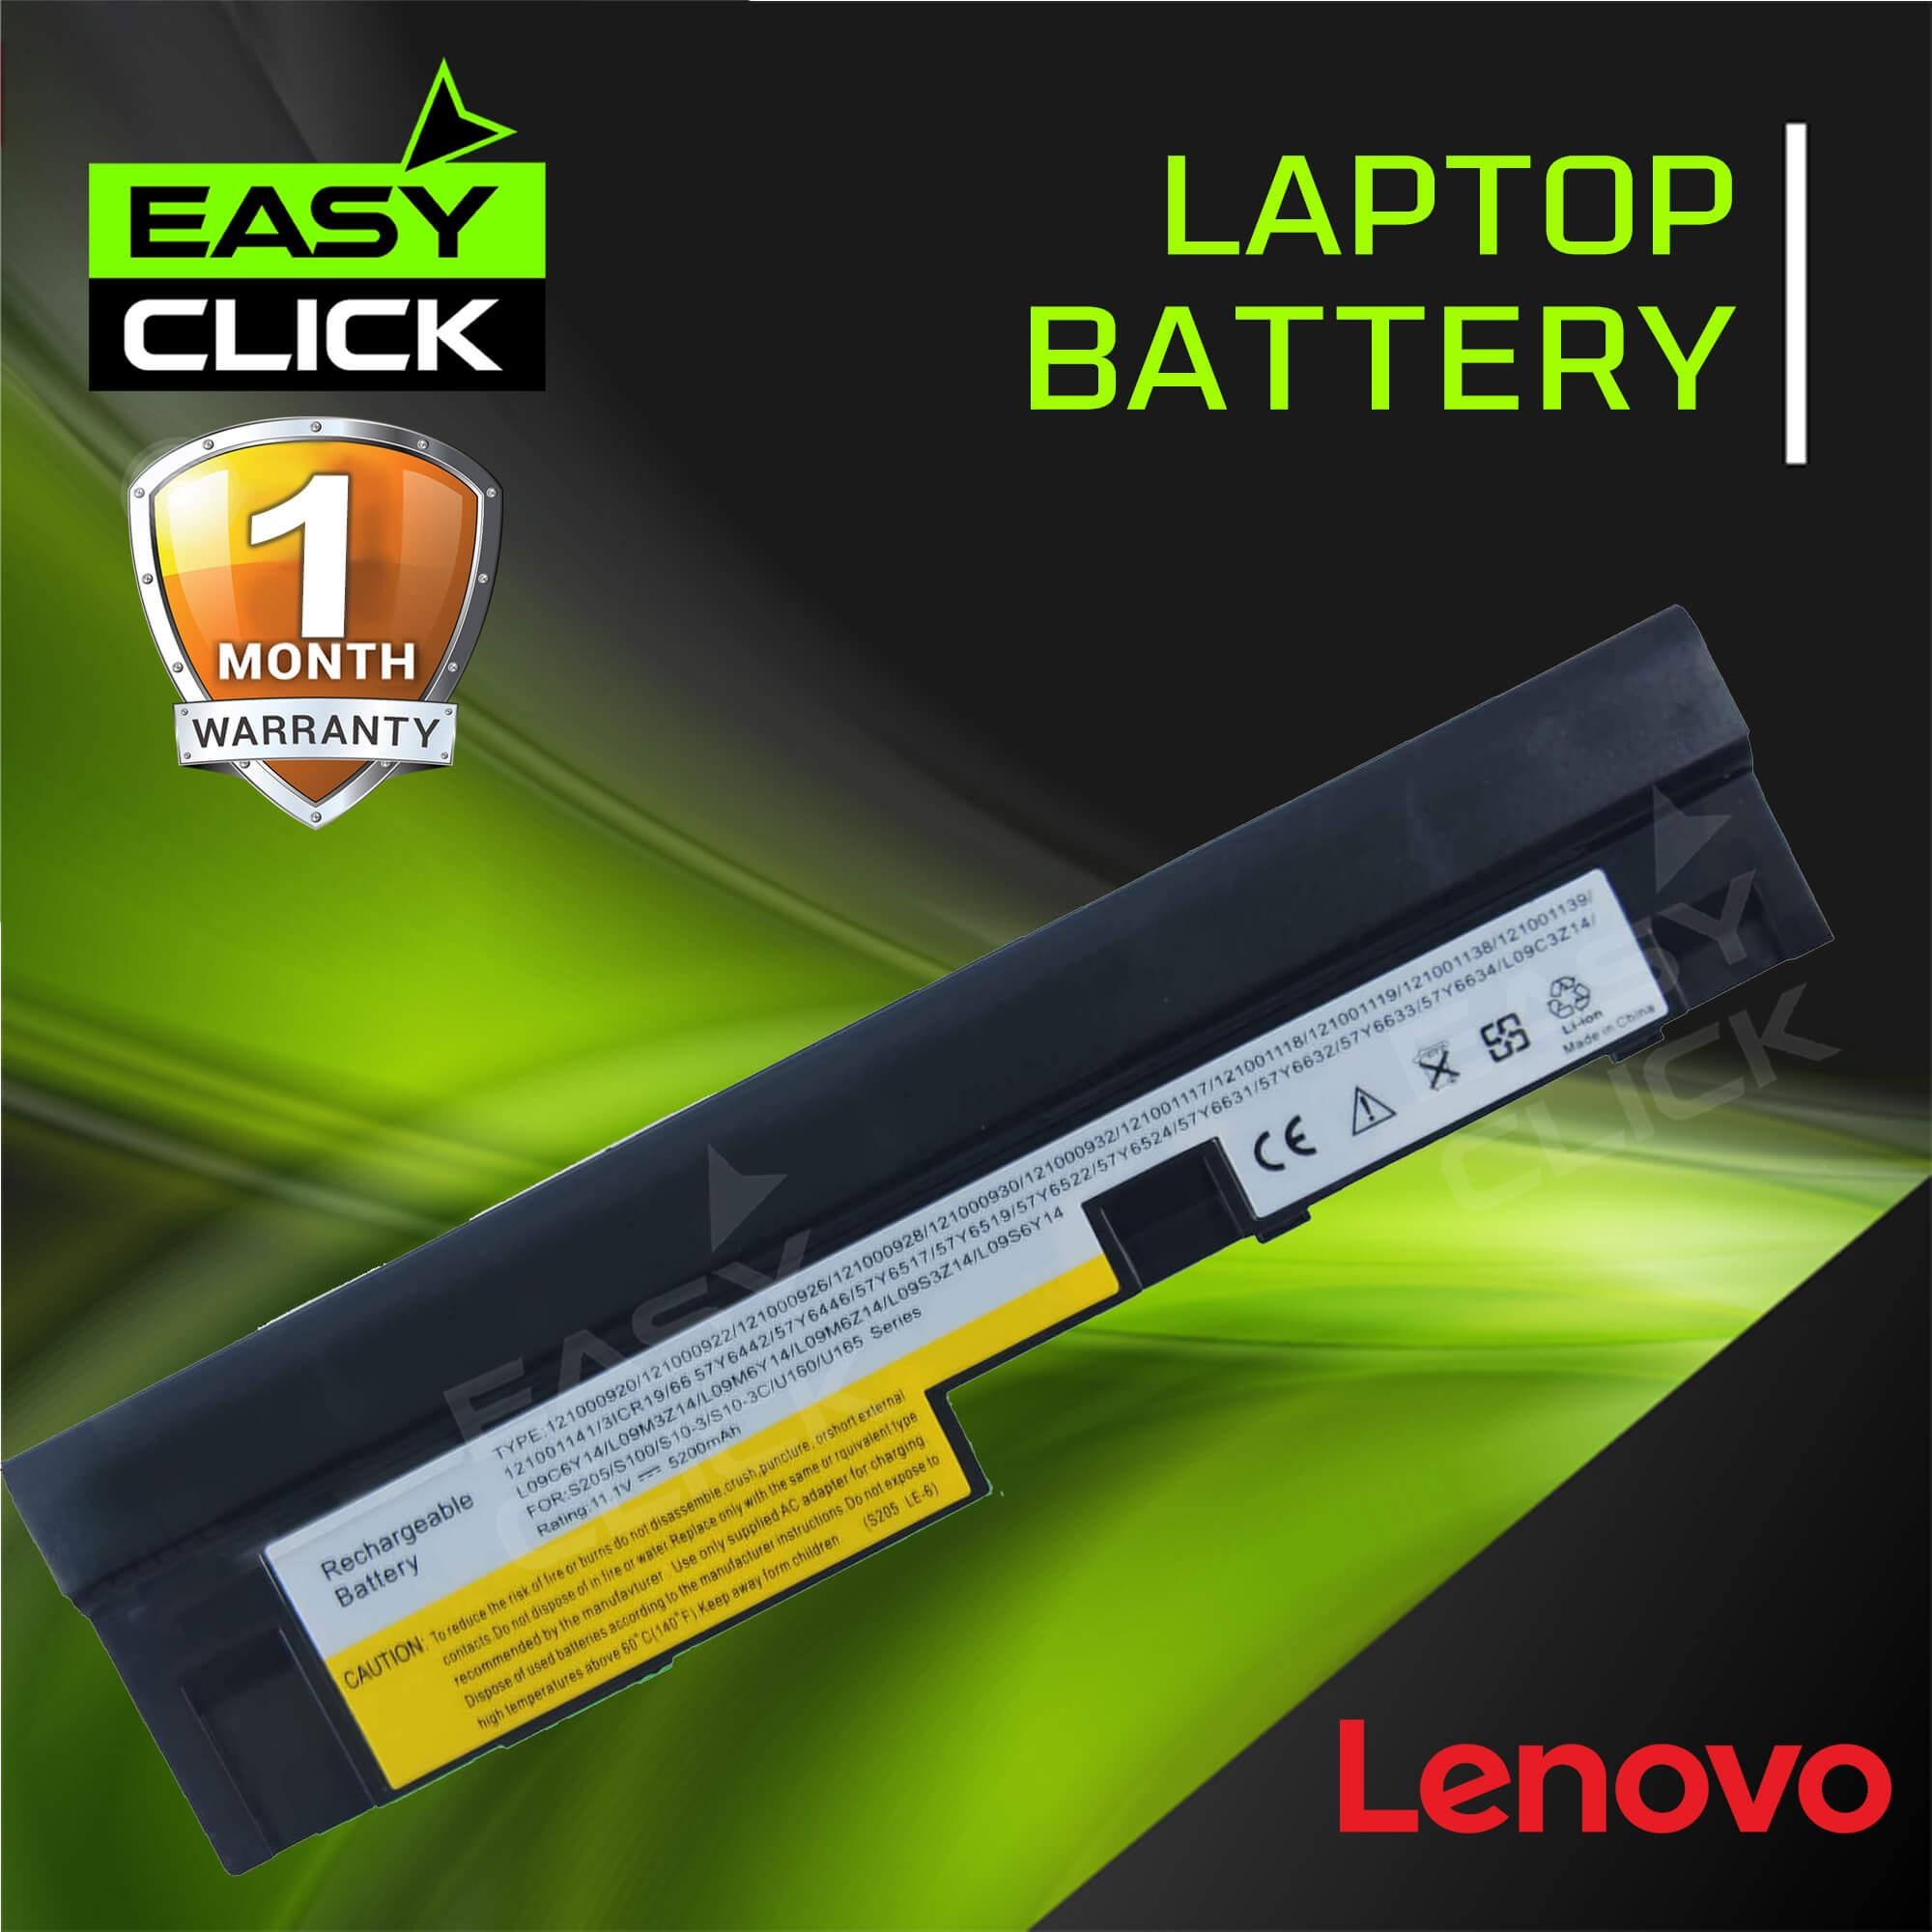 Laptop notebook battery for Lenovo Ideapad S10-3, S10-3S, S205, S100 S205